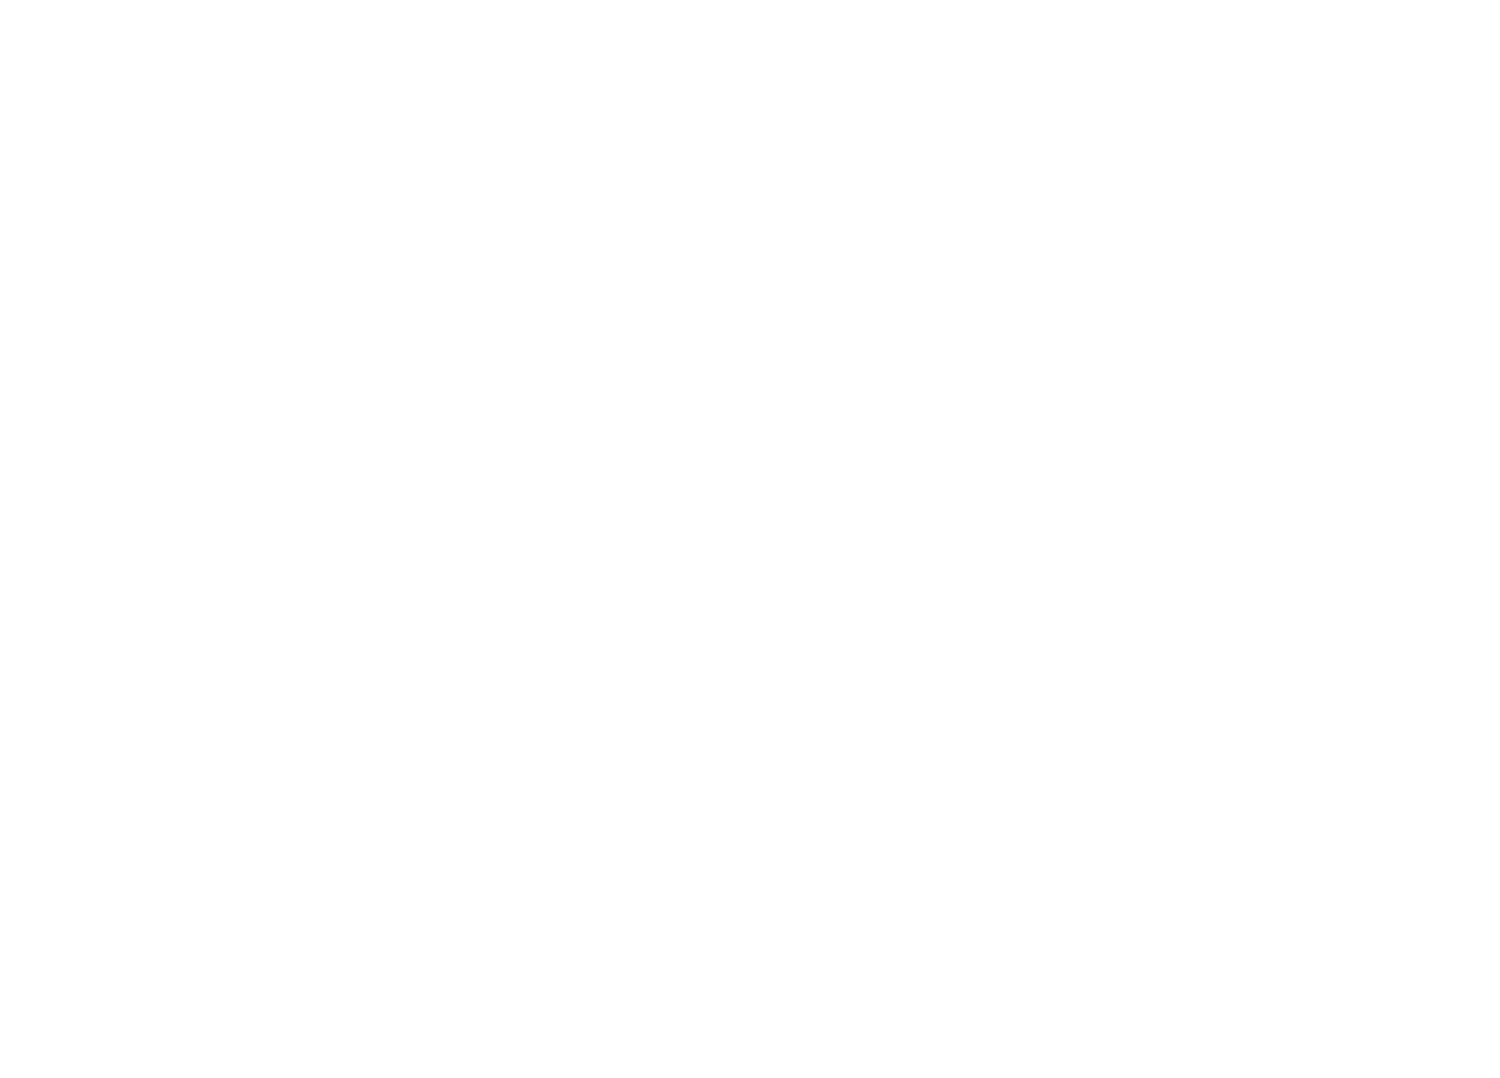 Green Life Washington